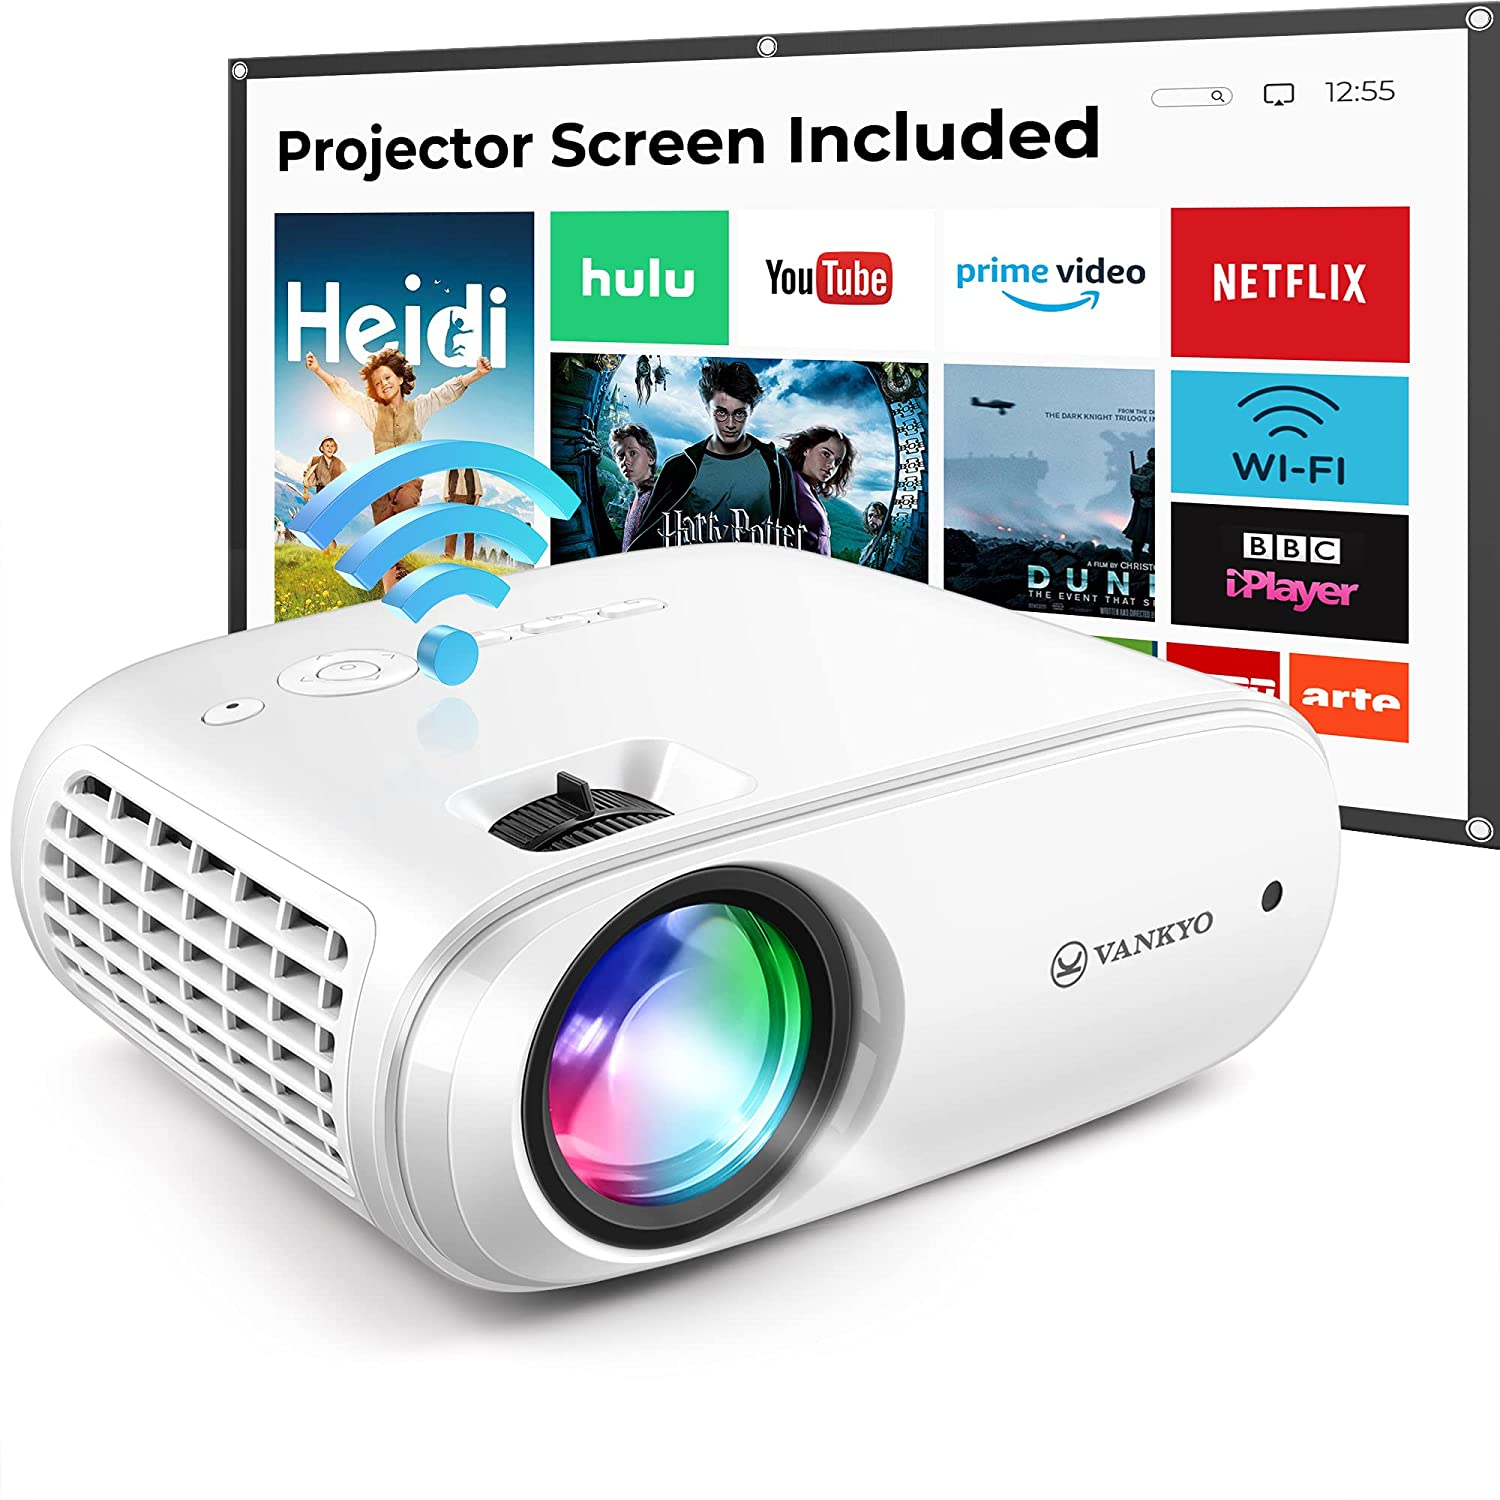 WiFi Video Projector with 100'' Projector Screen, 220